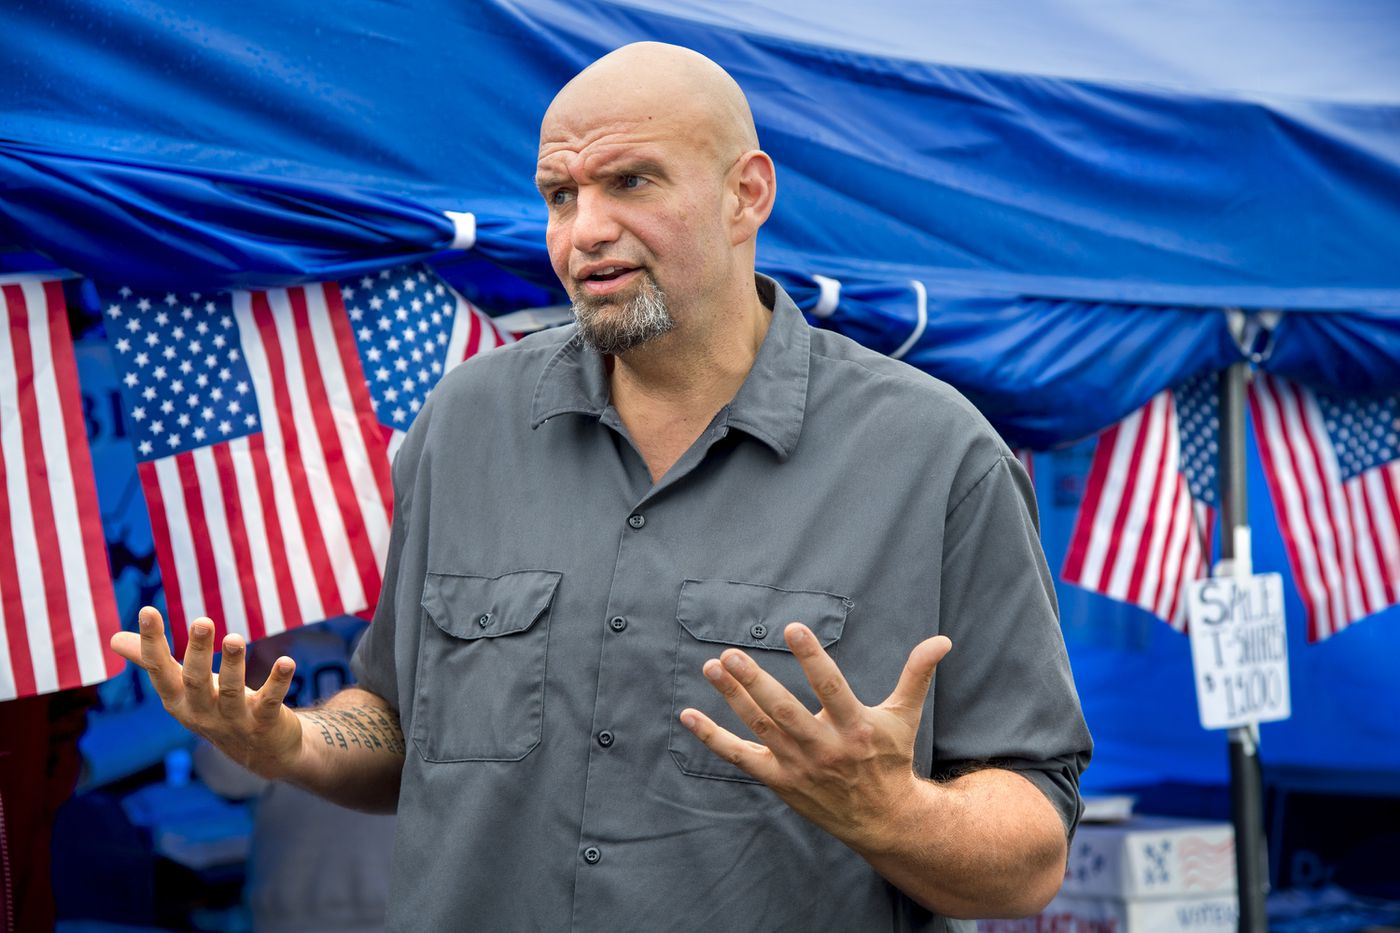 In Pennsylvania's Republican counties, John Fetterman is stirring Democratic interest